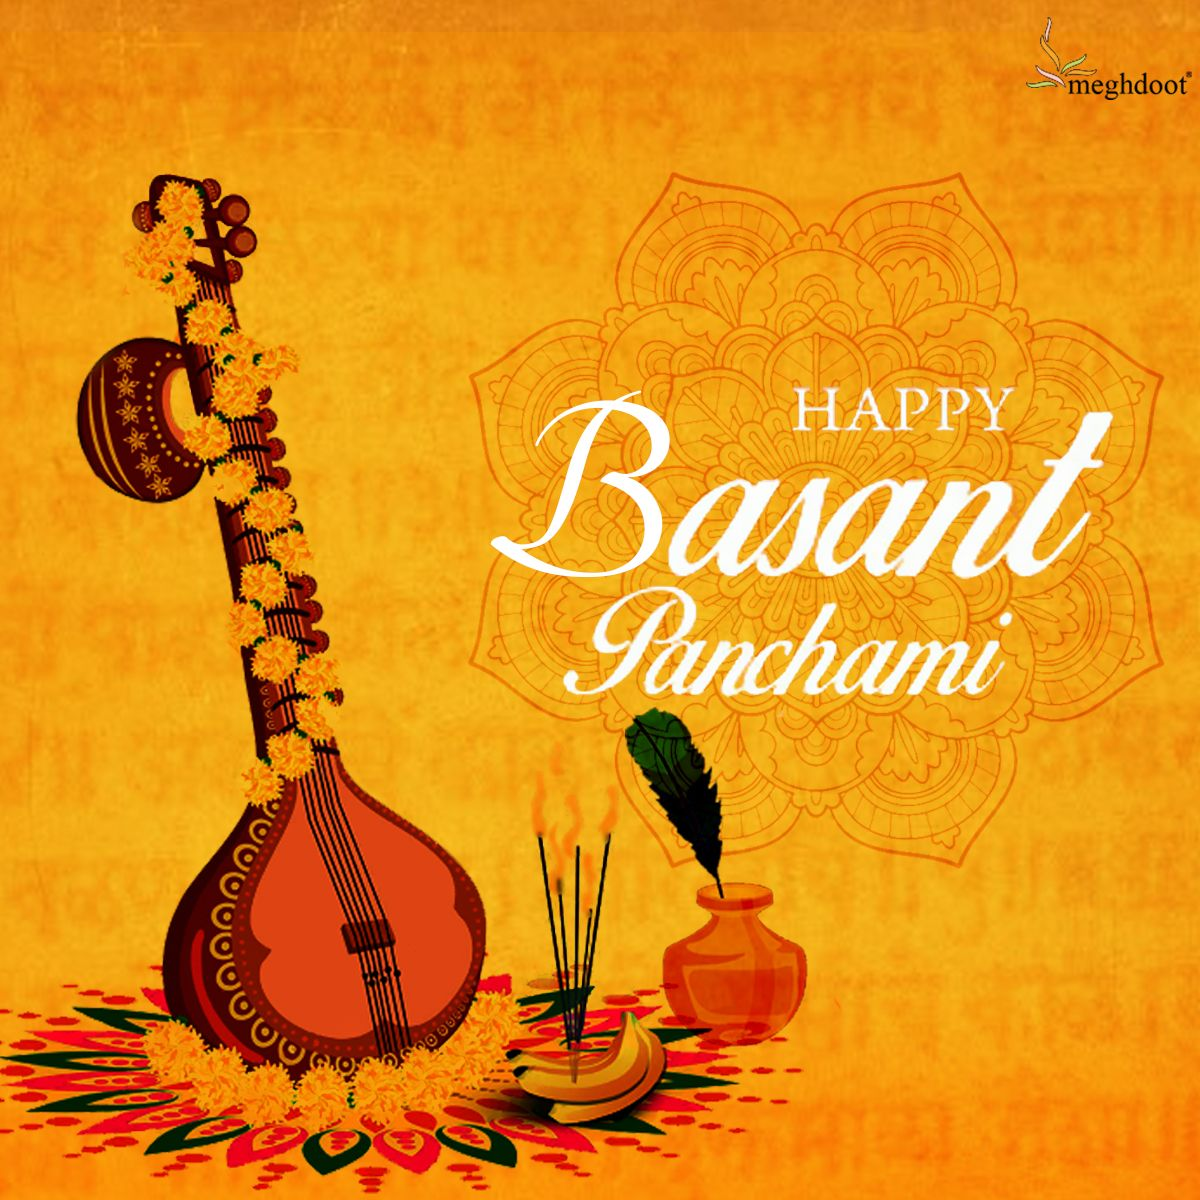 Wishing all of u a very happy basant panchami and saraswati puja wishing all of u a very happy basant panchami and saraswati puja may all your hard m4hsunfo